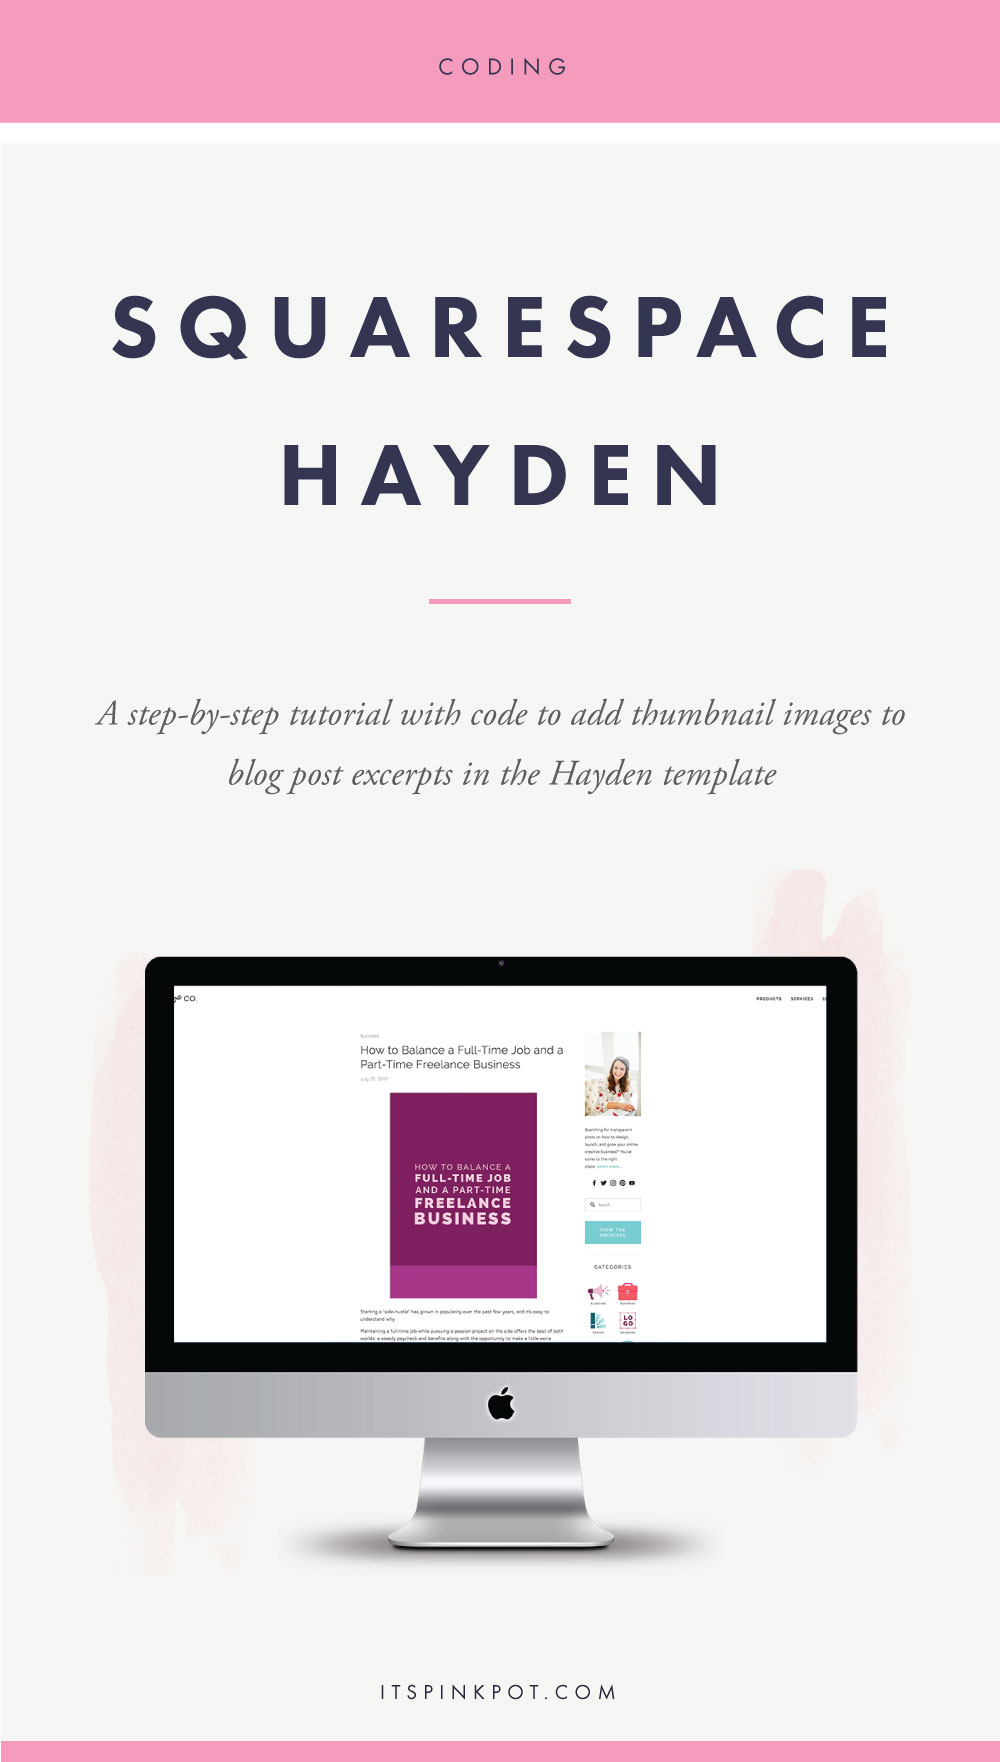 Using the Hayden template on Squarespace? Click here to learn how to get the thumbnails on blog post excerpts >>